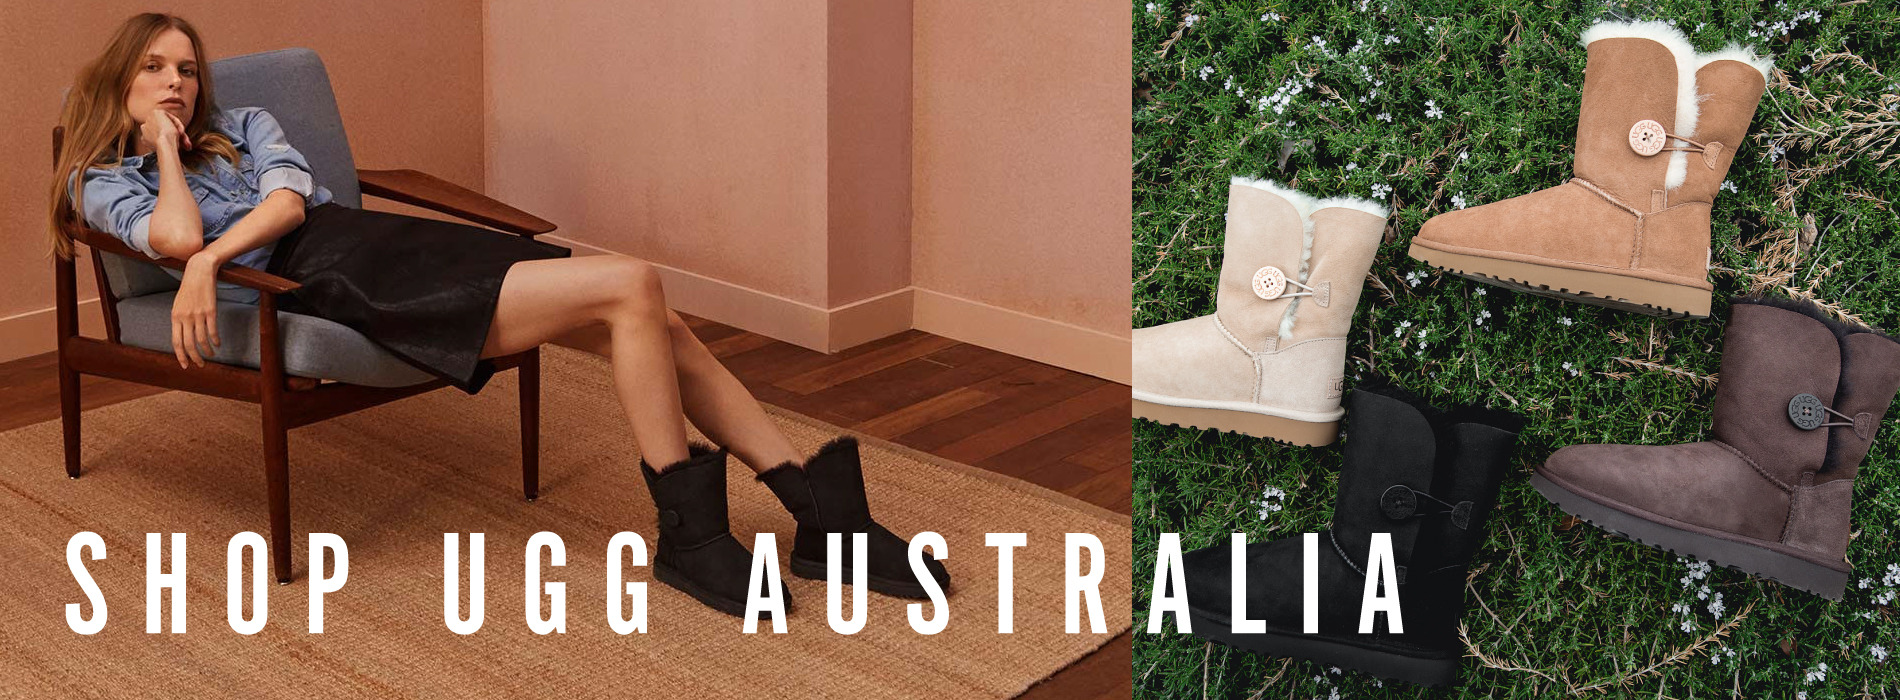 Shop All UGG Australia | Tiltedsole.com